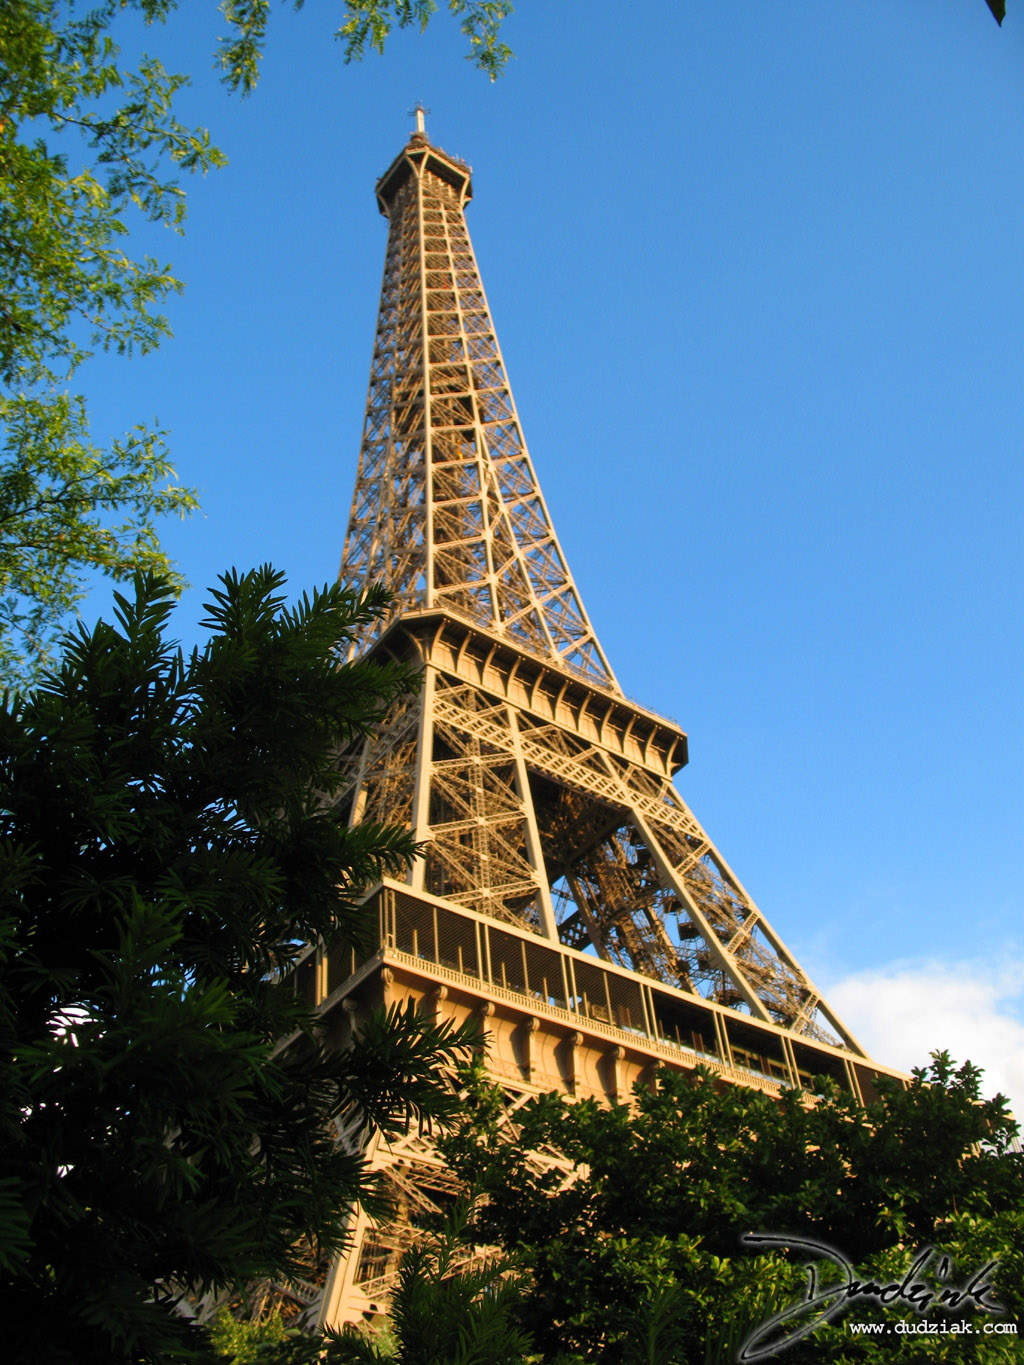 Tour Eiffel,  Eiffel Tower,  Blue Sky,  Trees